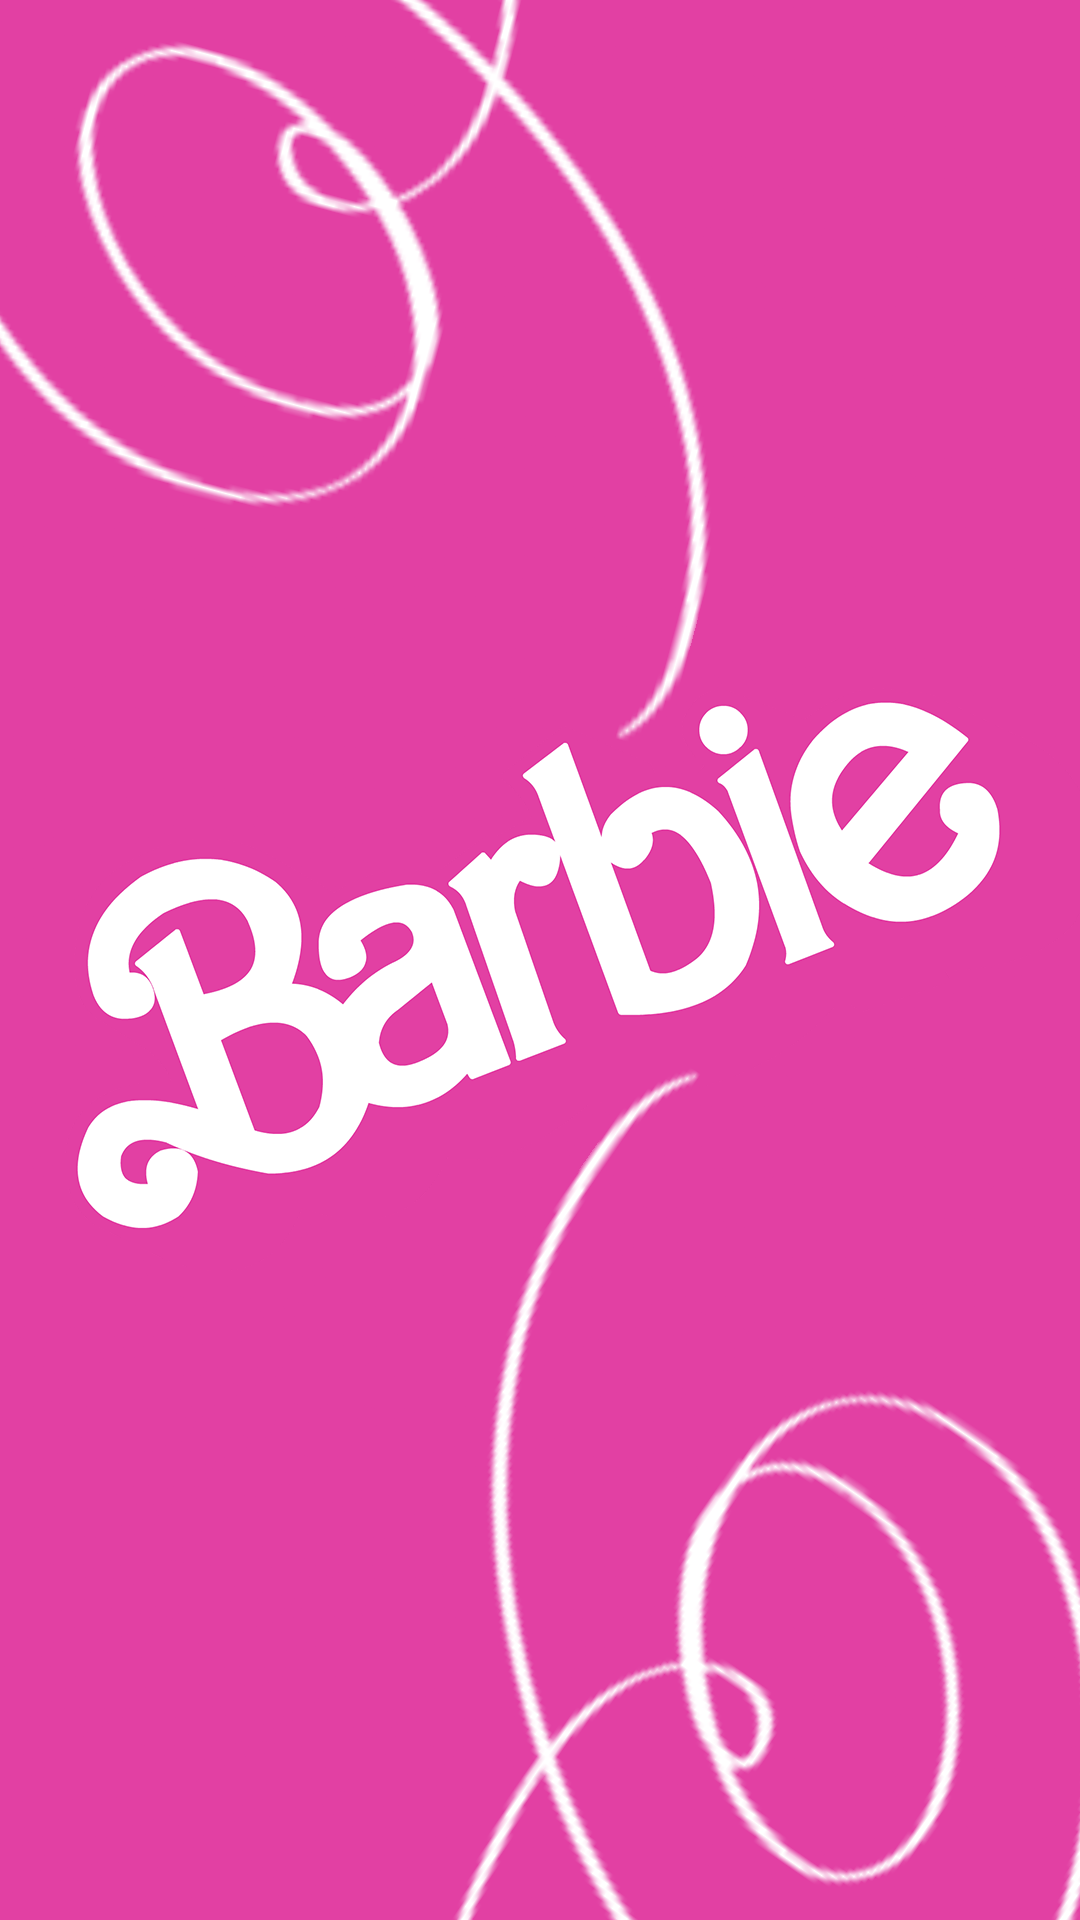 Barbie Girl IPhone Wallpaper